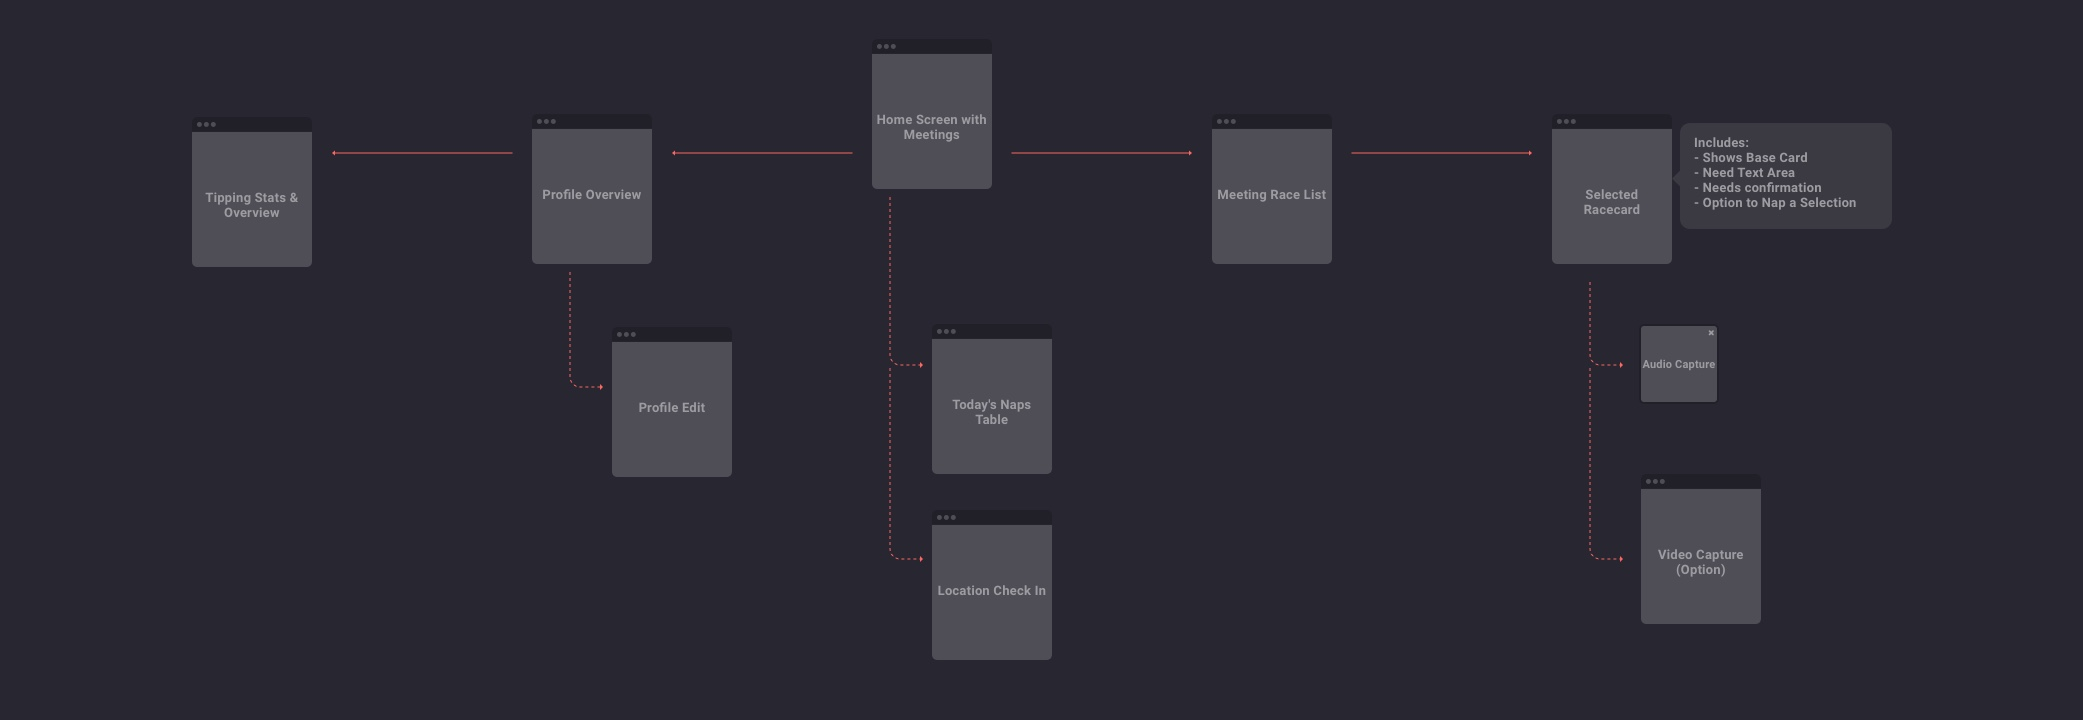 Sitemap of the tipster app